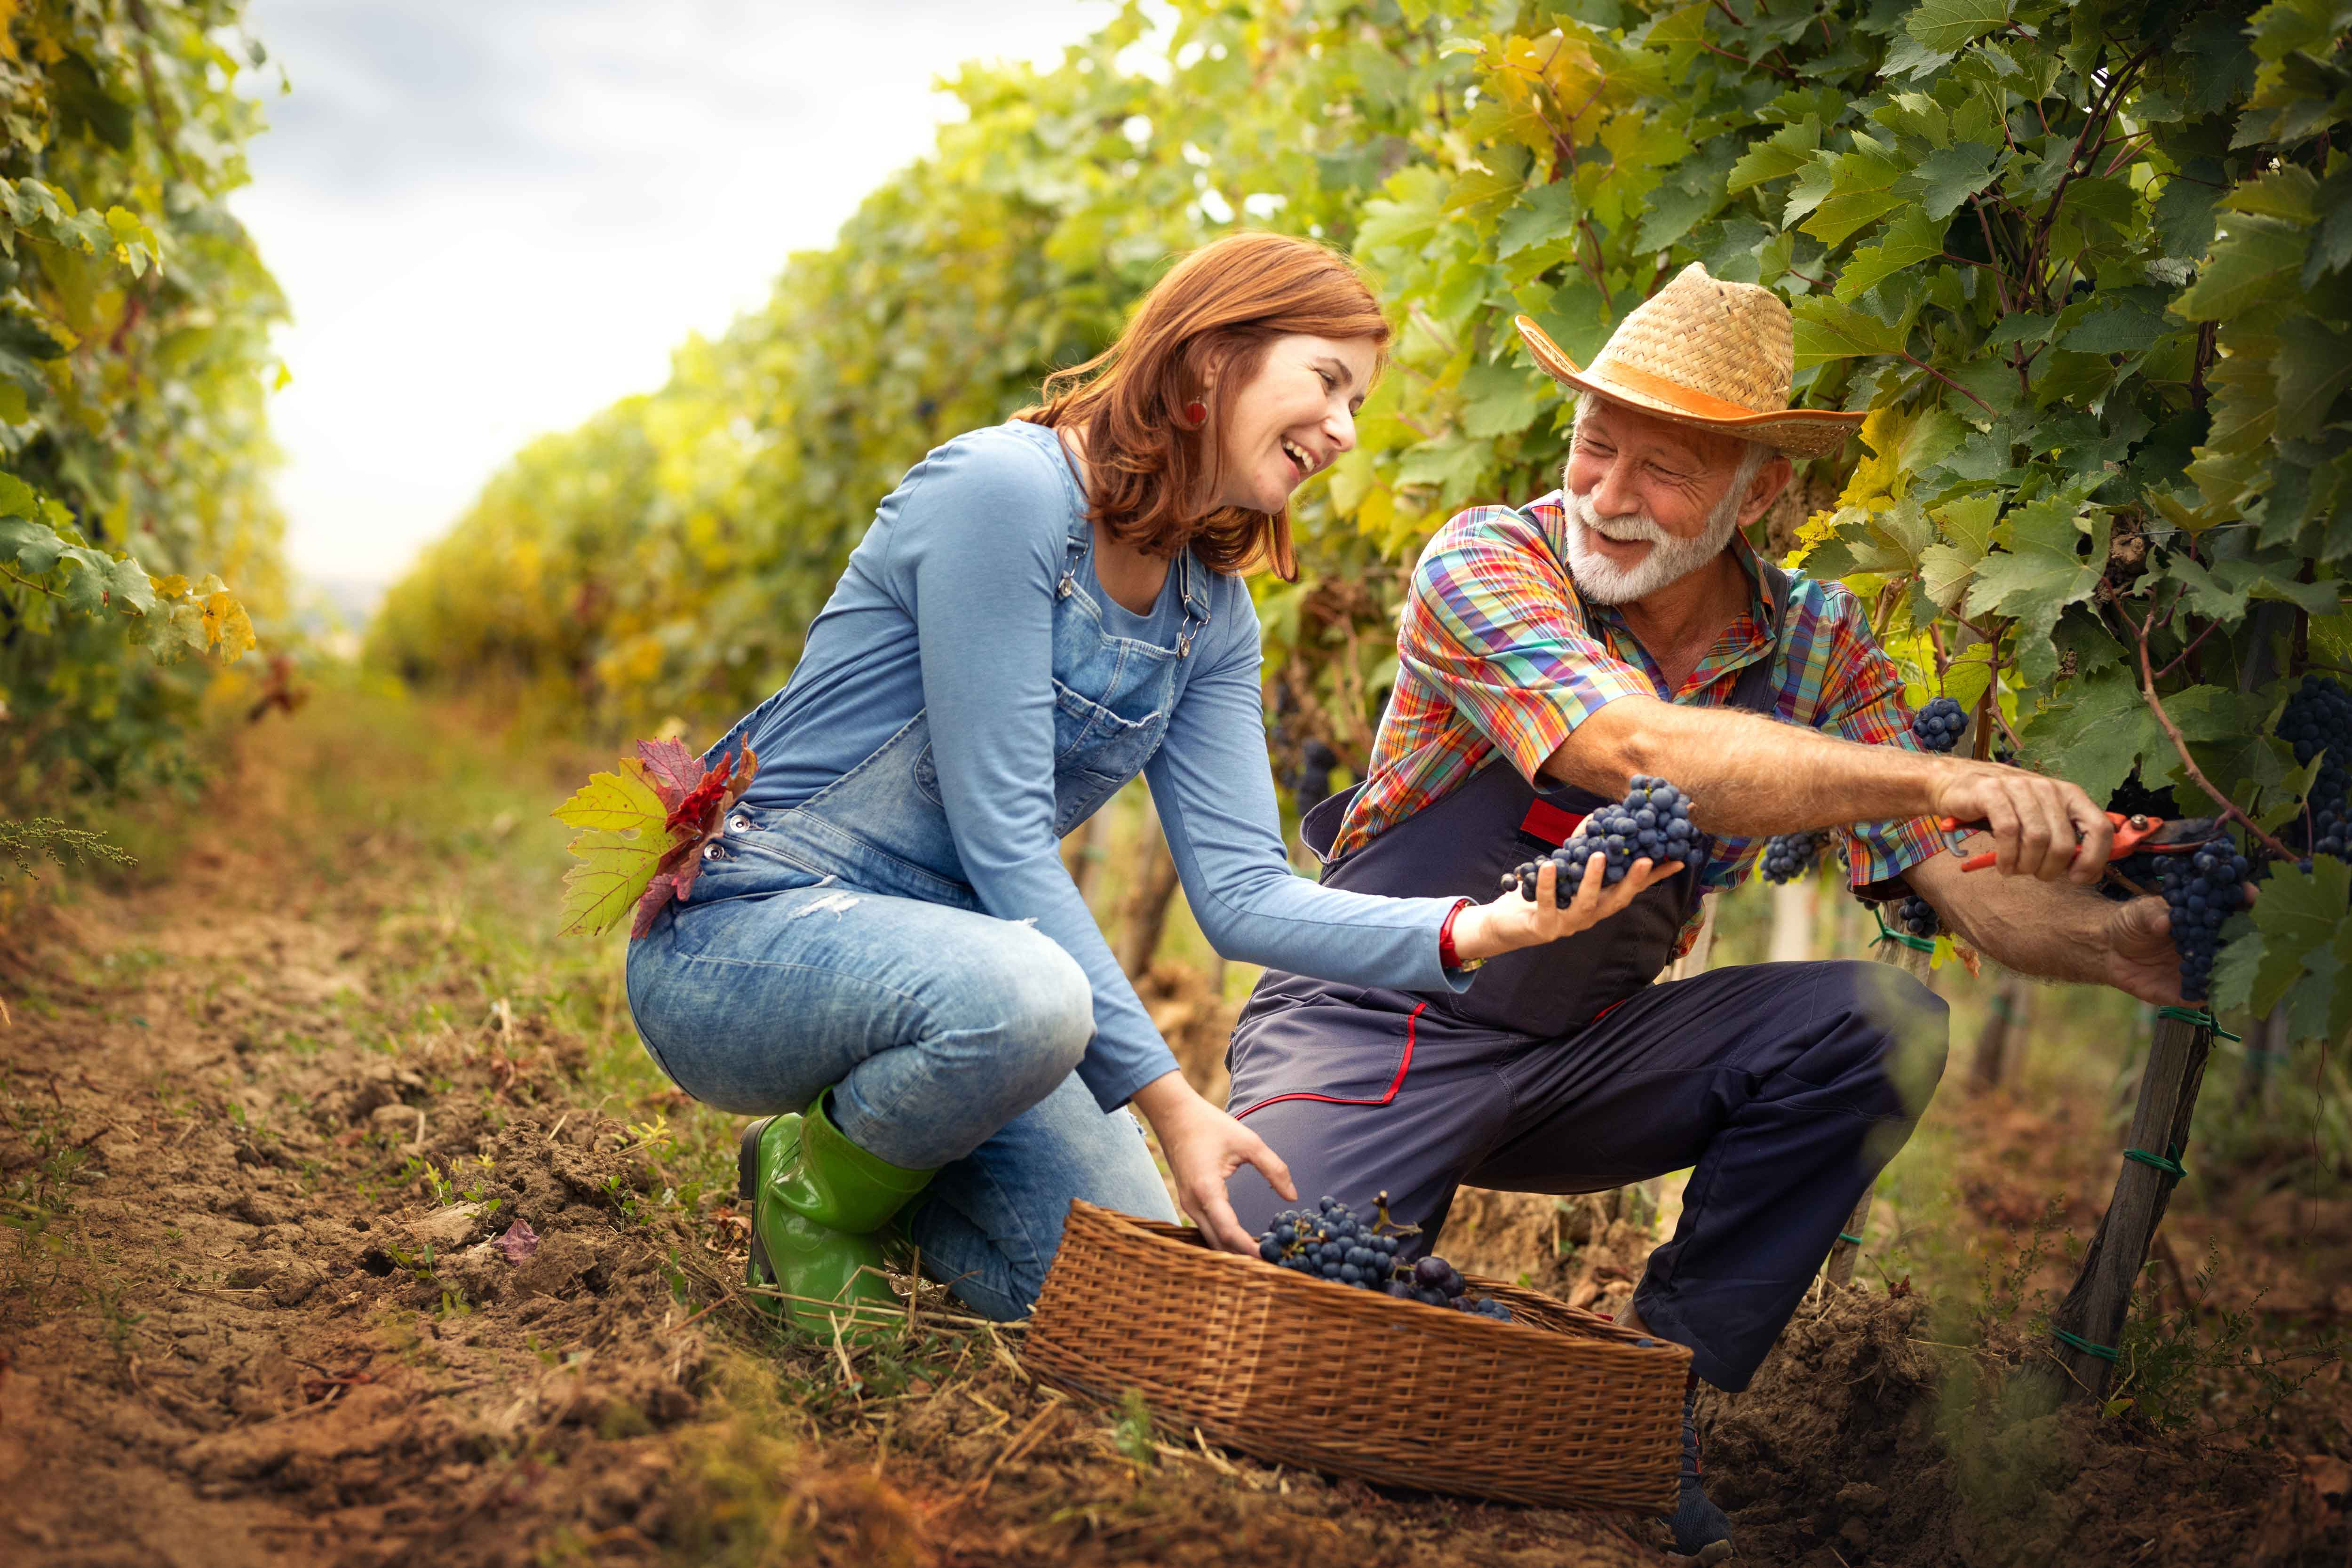 Two people picking grapes at a vineyard